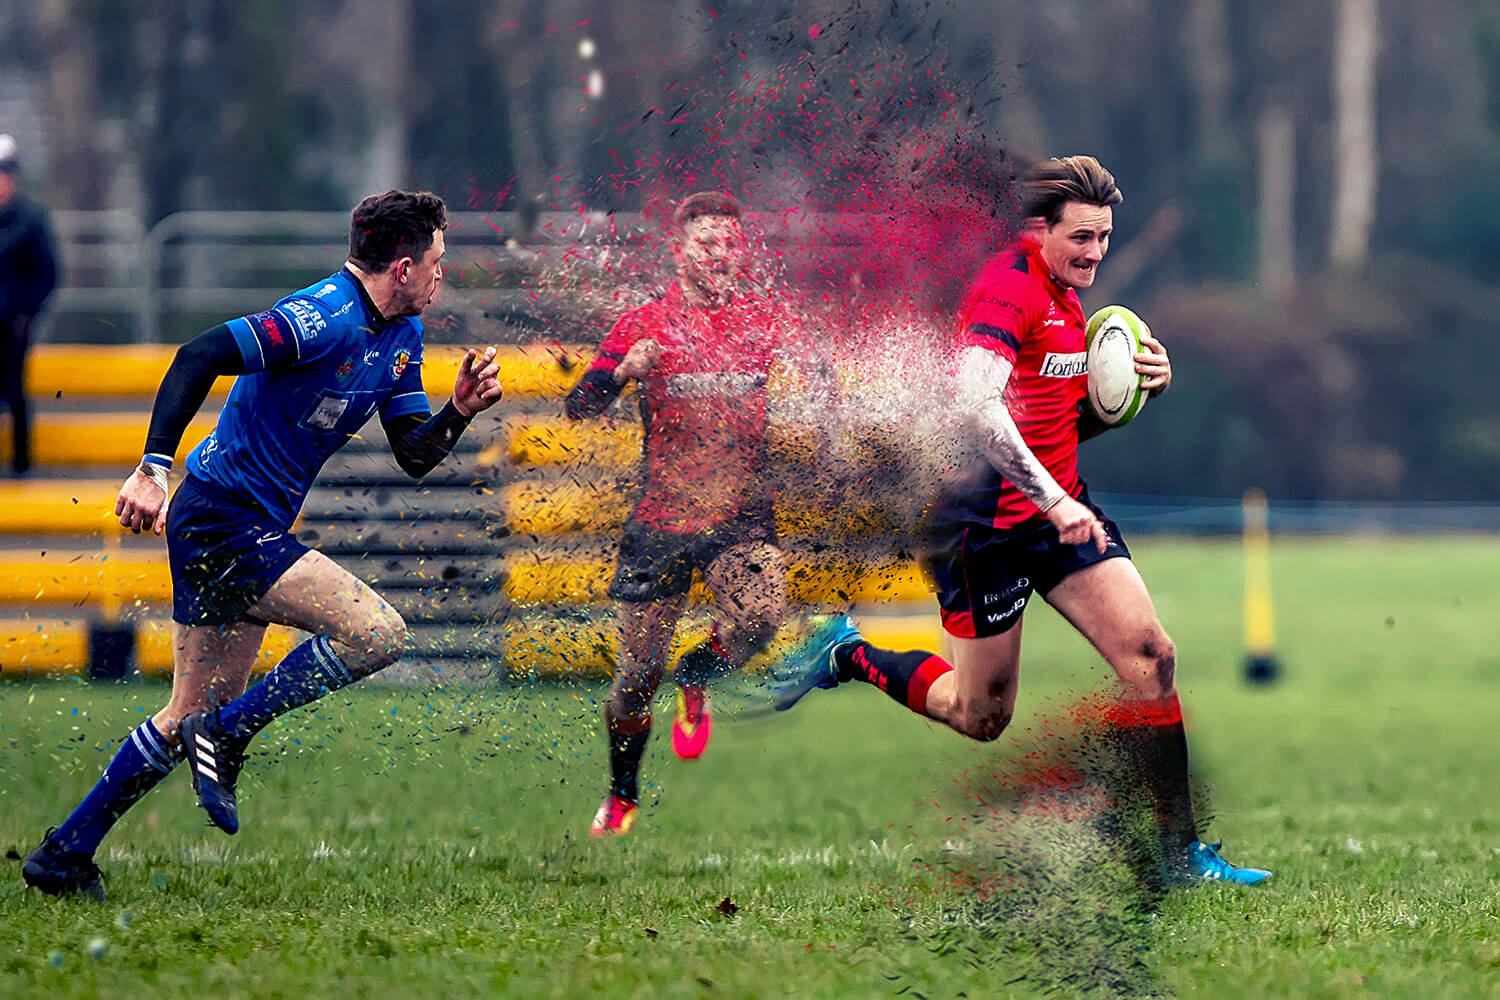 Bournemouth Rugby Club Player